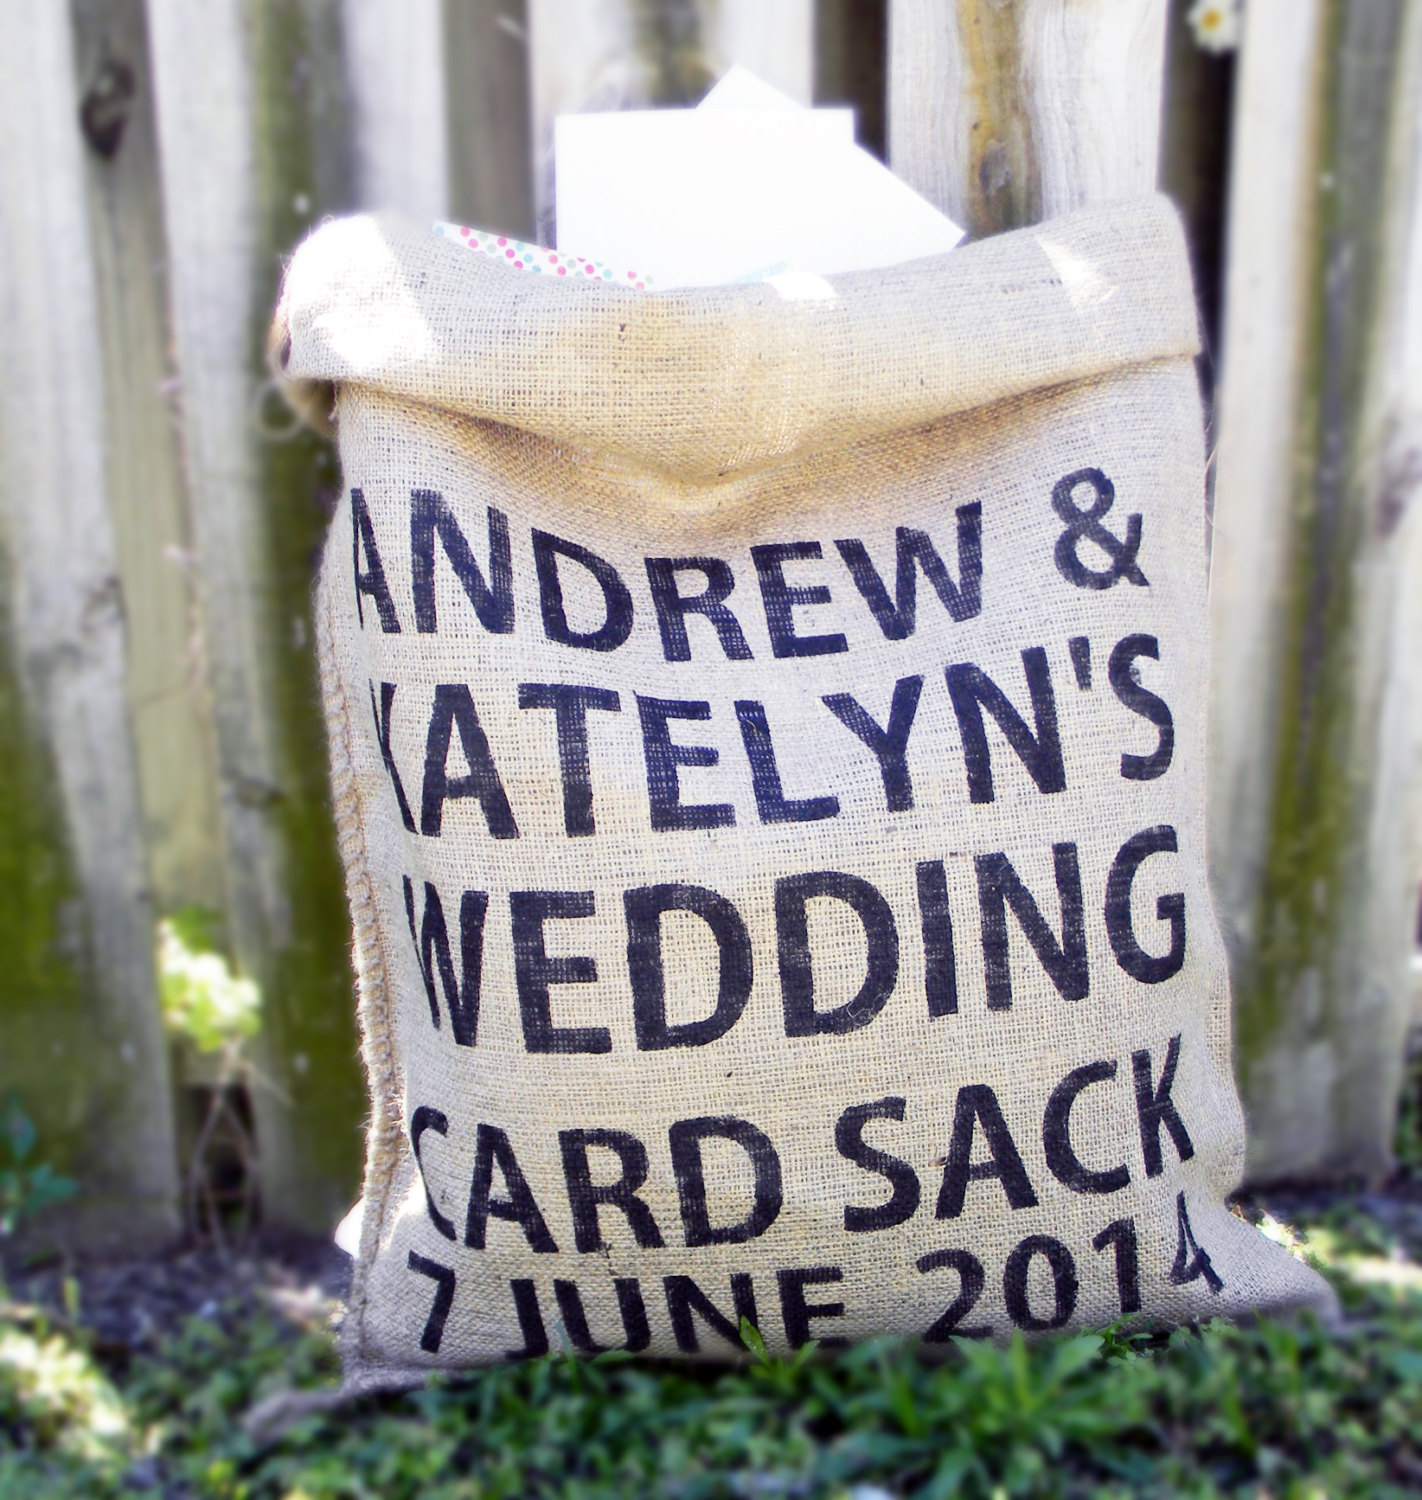 burlap card sack | 50 Best Burlap Wedding Ideas | via http://emmalinebride.com/decor/burlap-wedding-ideas/